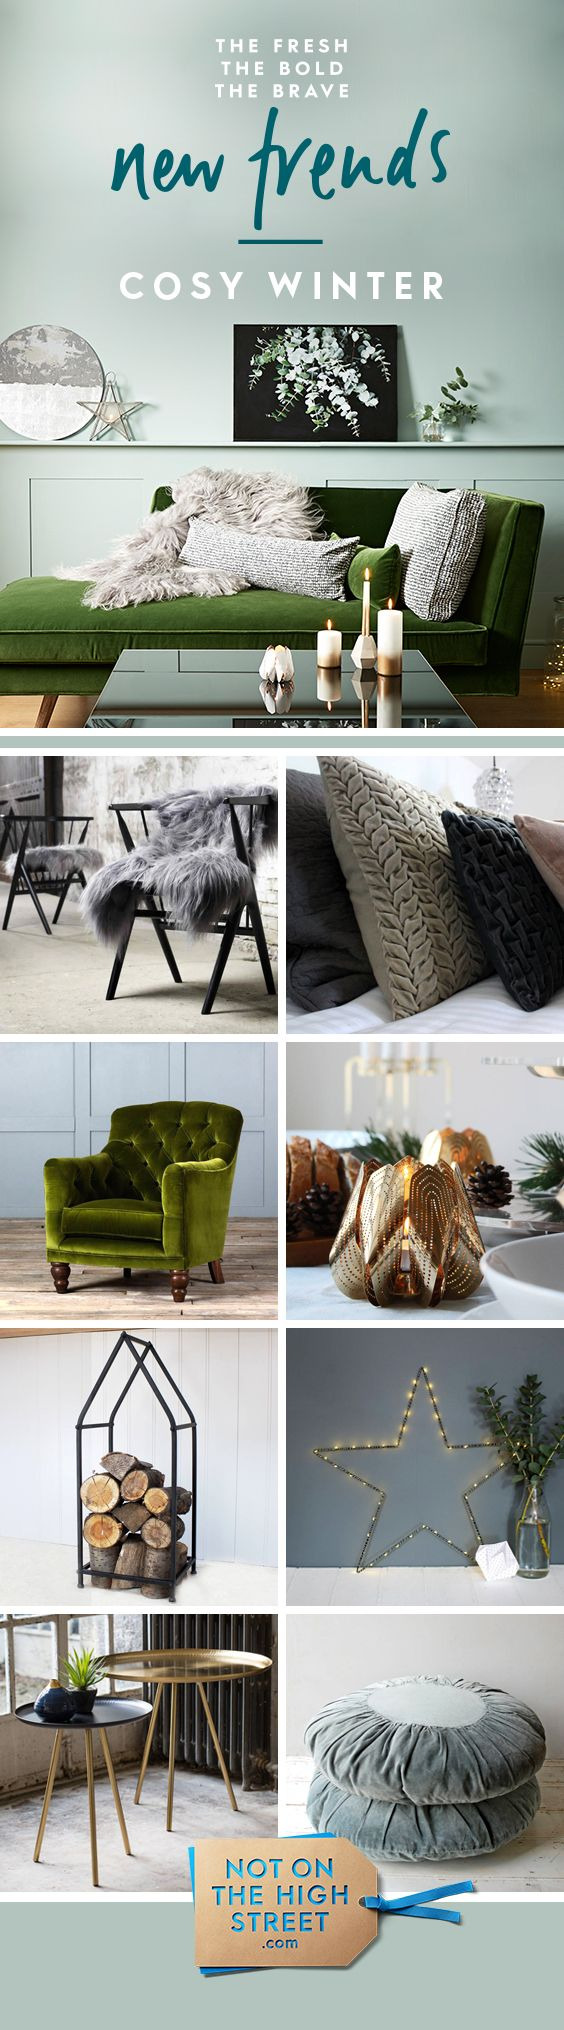 Think dark, elegant colours alongside warm lighting and metallic surfaces. Achieve this look by combining dark velvets and multiple light sources such as fairy lights, lanterns and floor lamps.